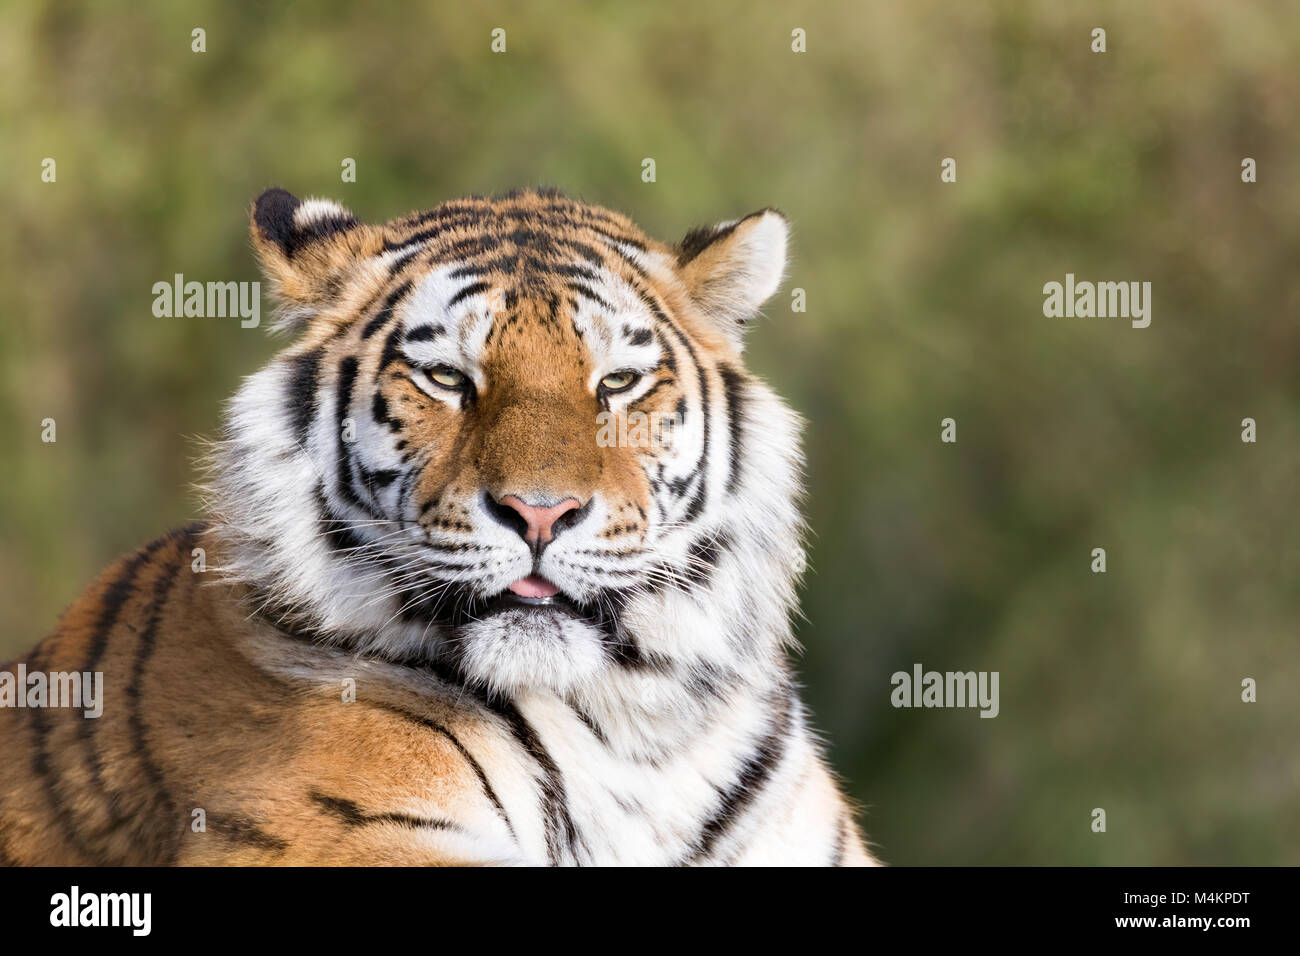 Adult Siberian tiger, Panthera tigris altaica, in afternoon sunlight. This endangered cat is indigenous to Siberia - Stock Image